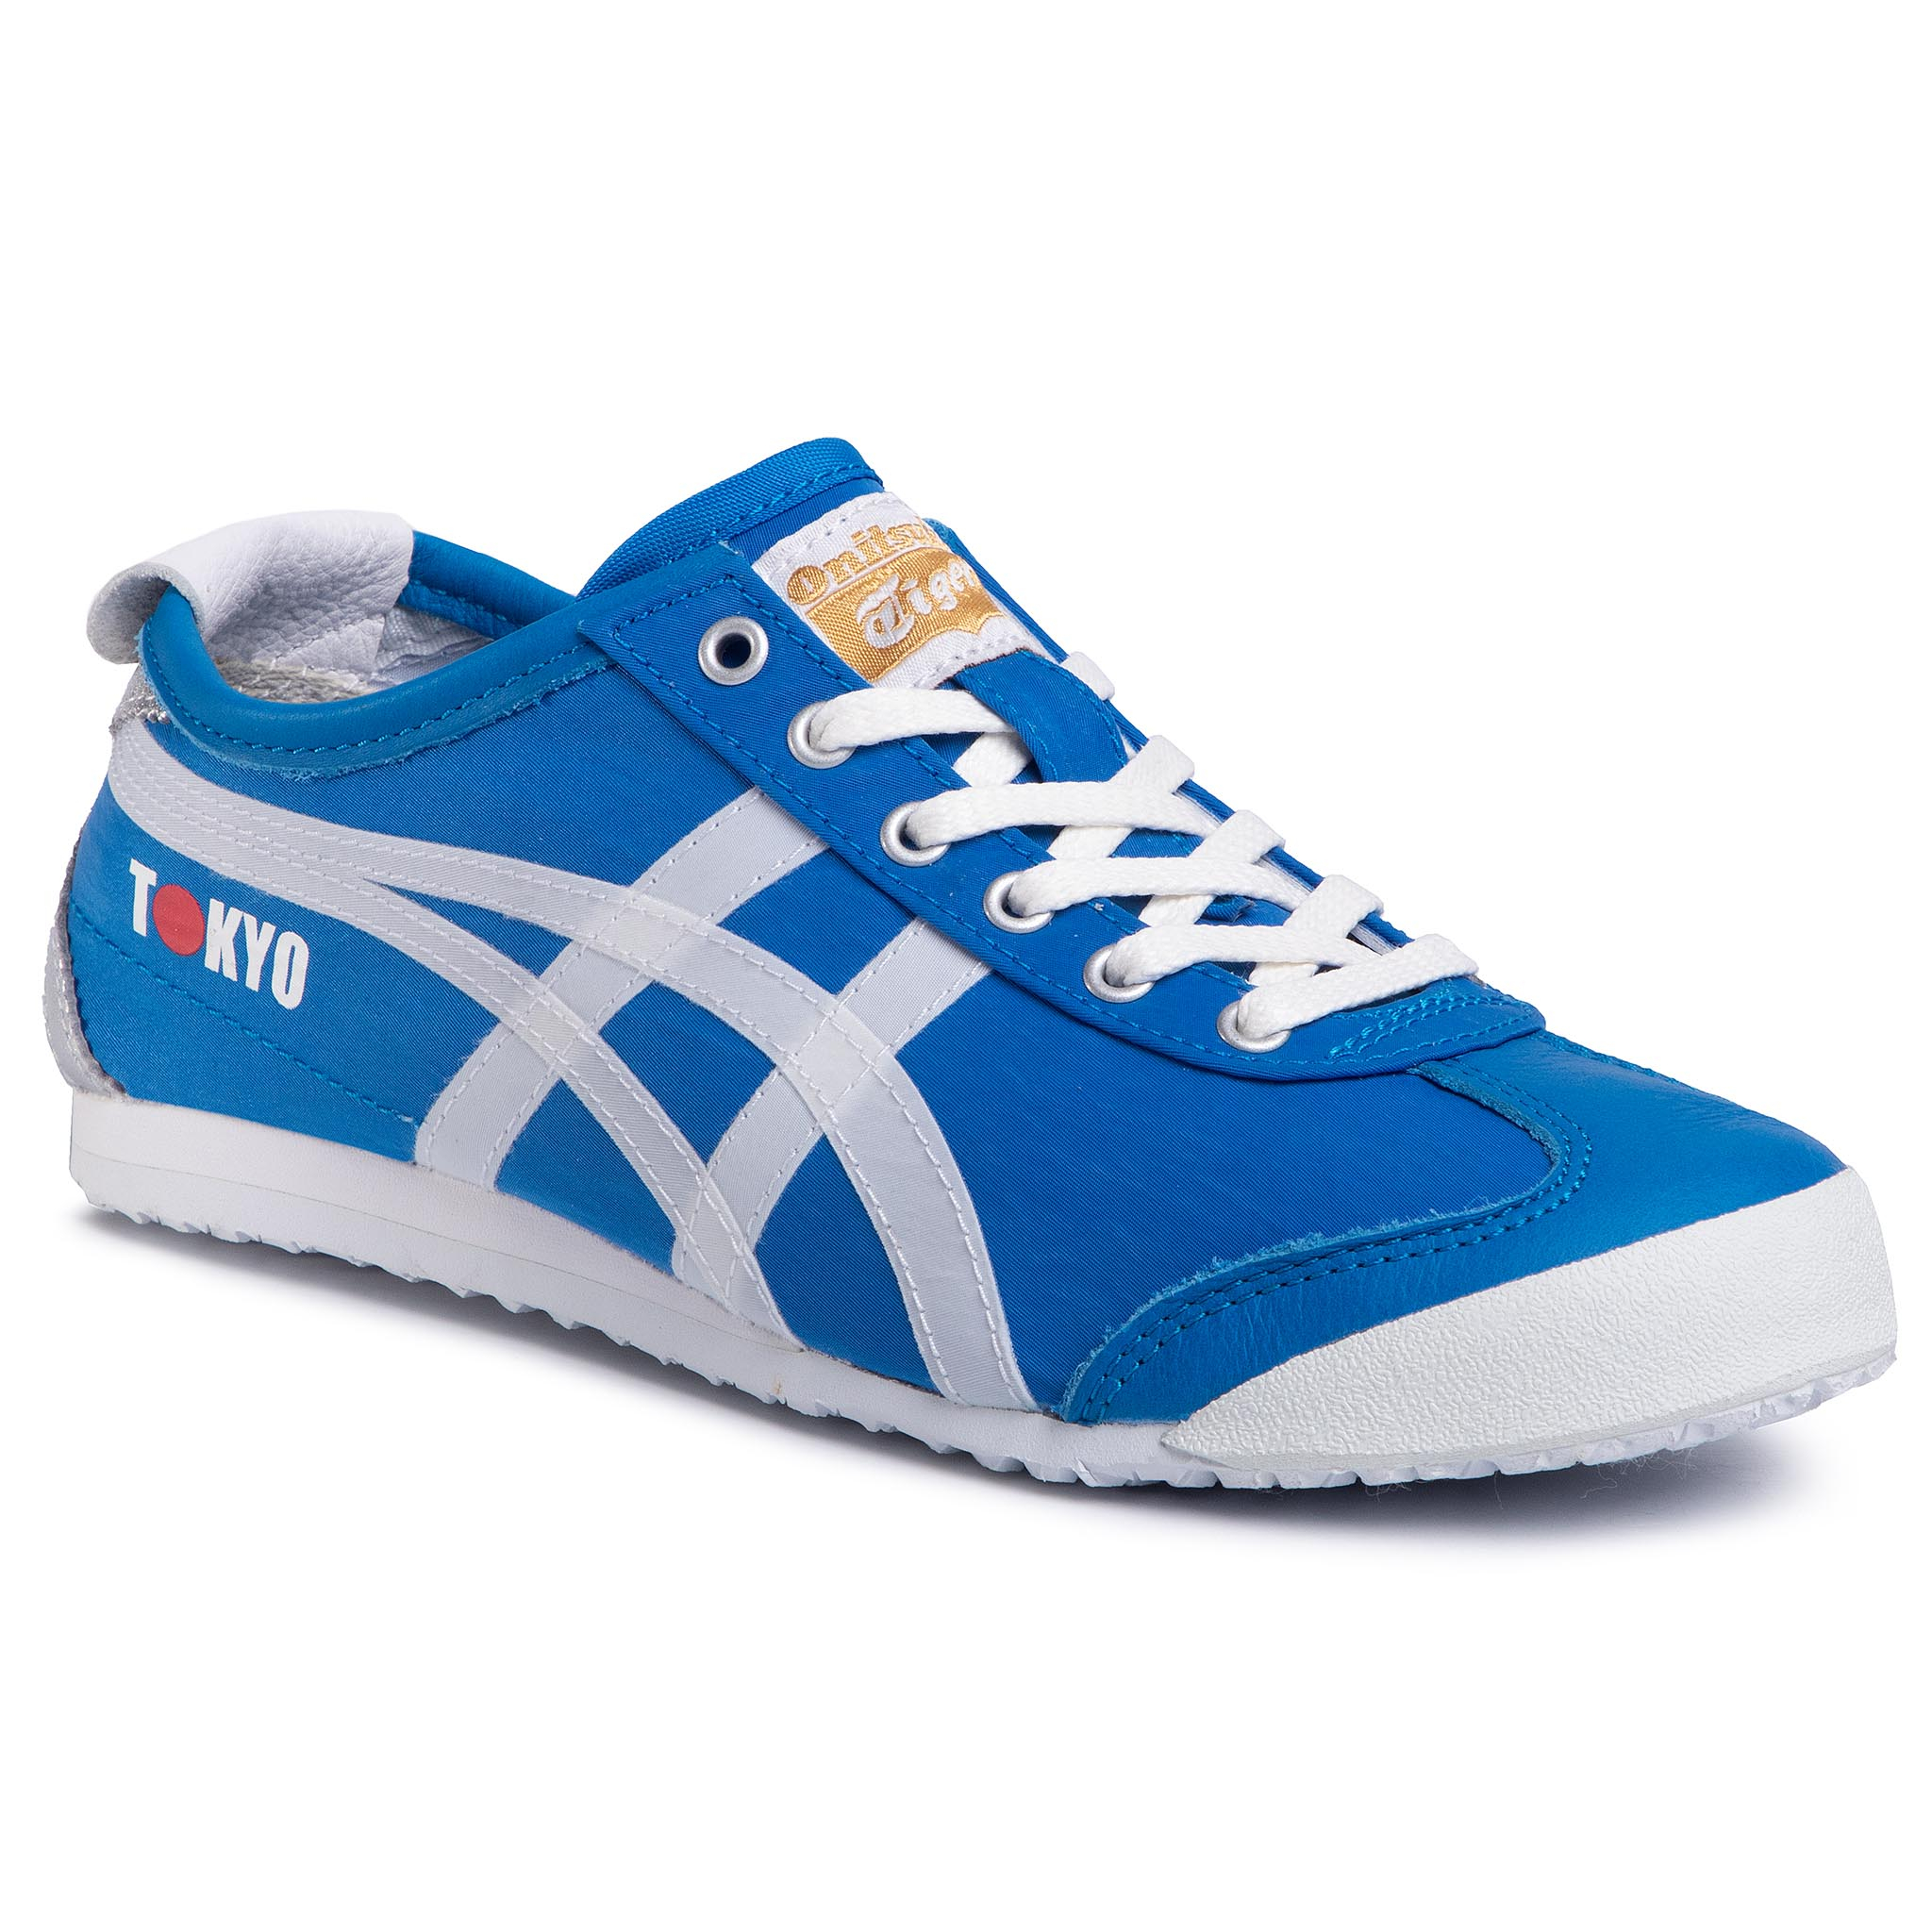 Sneakers ONITSUKA TIGER - Mexico 66 1183A730 Directoire Blue/White 401